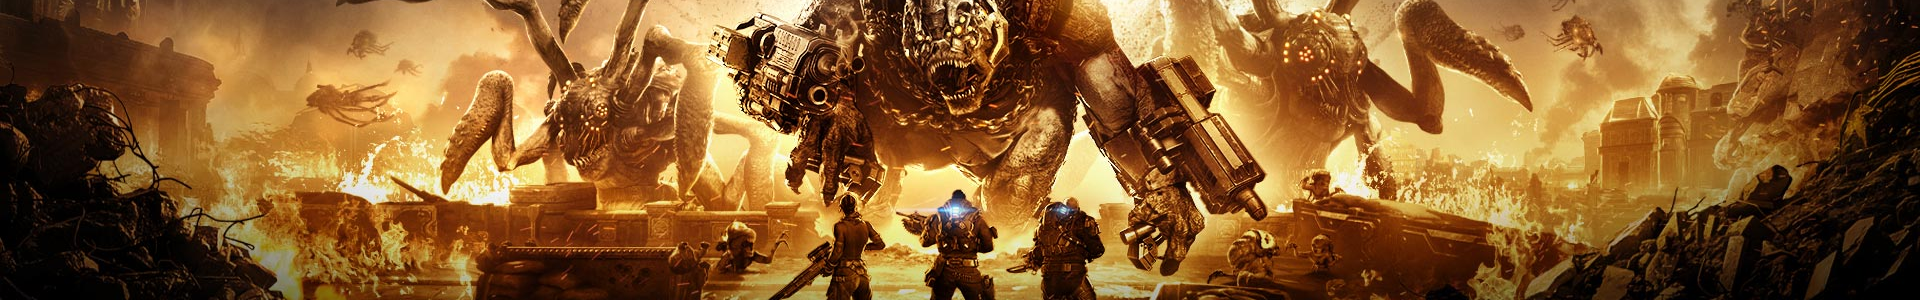 Banner media of Gears Tactics video game.